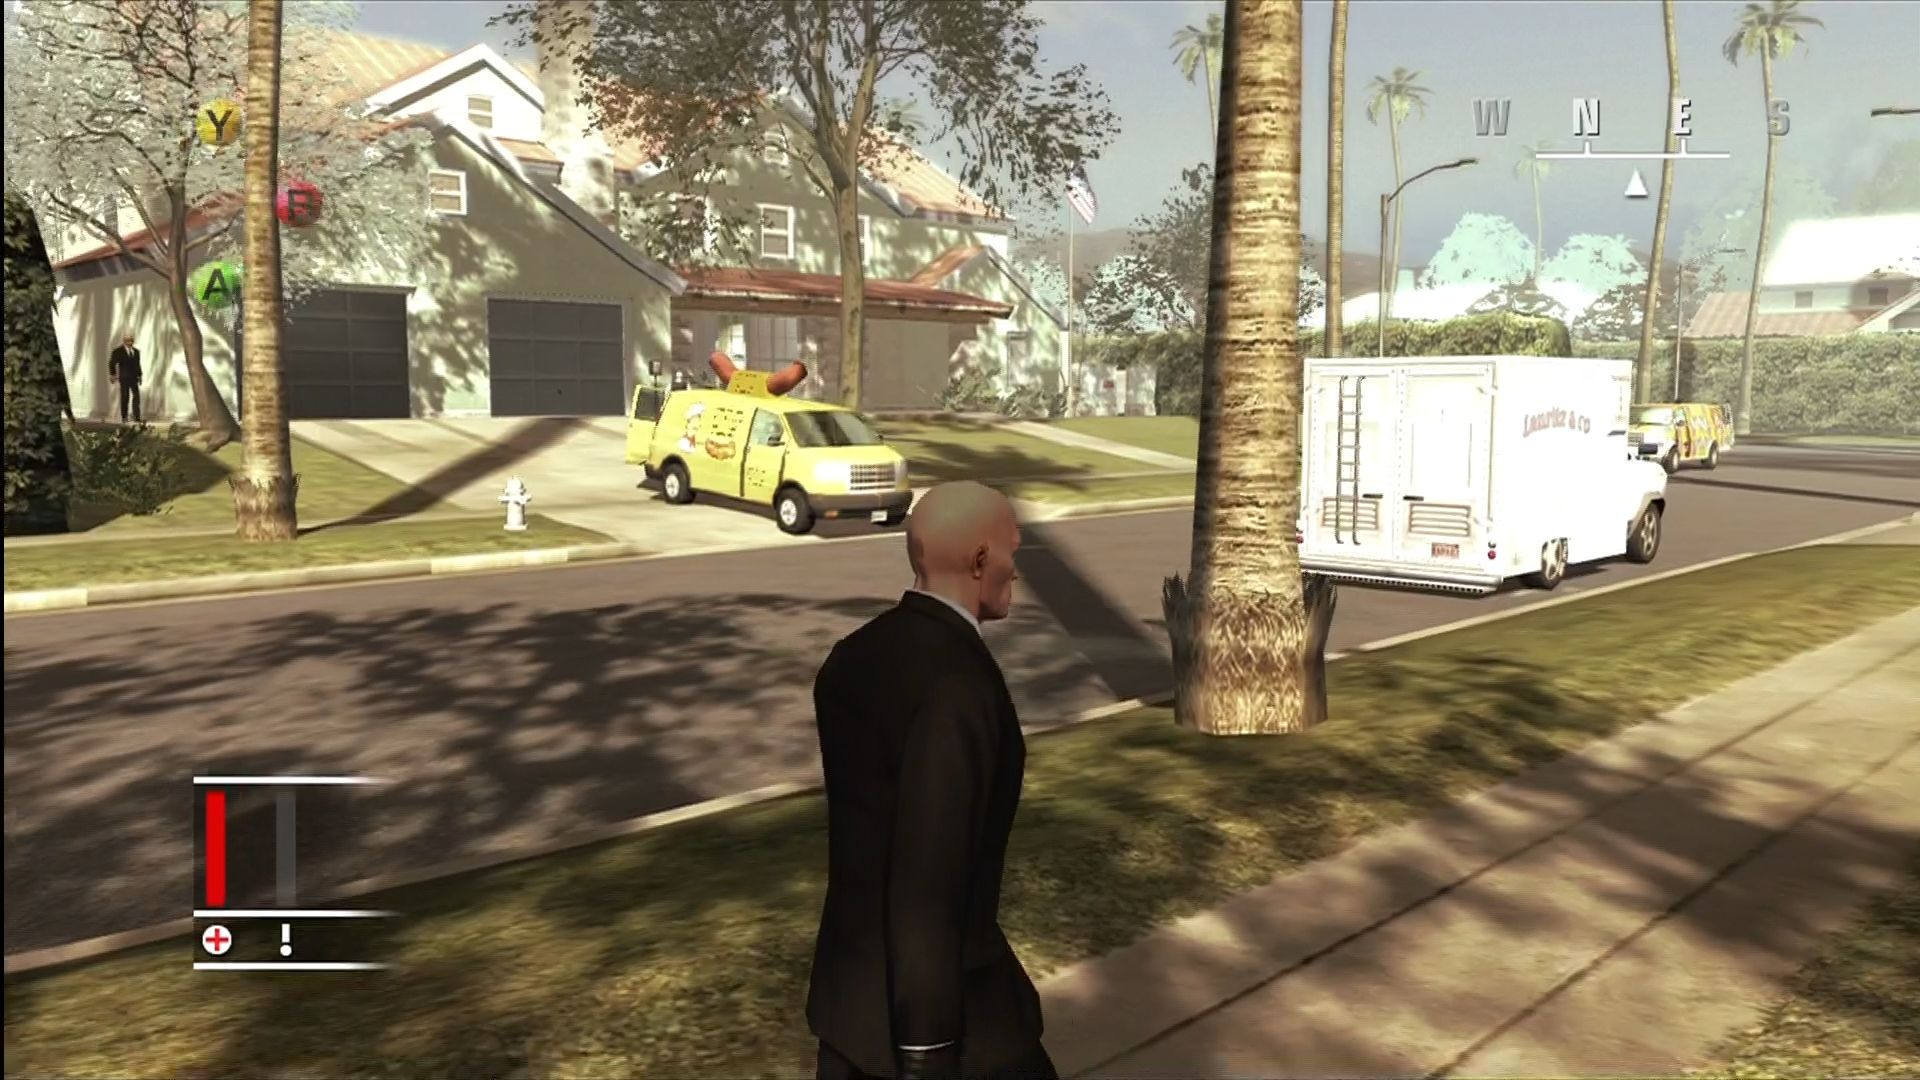 435591-hitman-blood-money-xbox-360-screenshot-out-in-the-suburbs